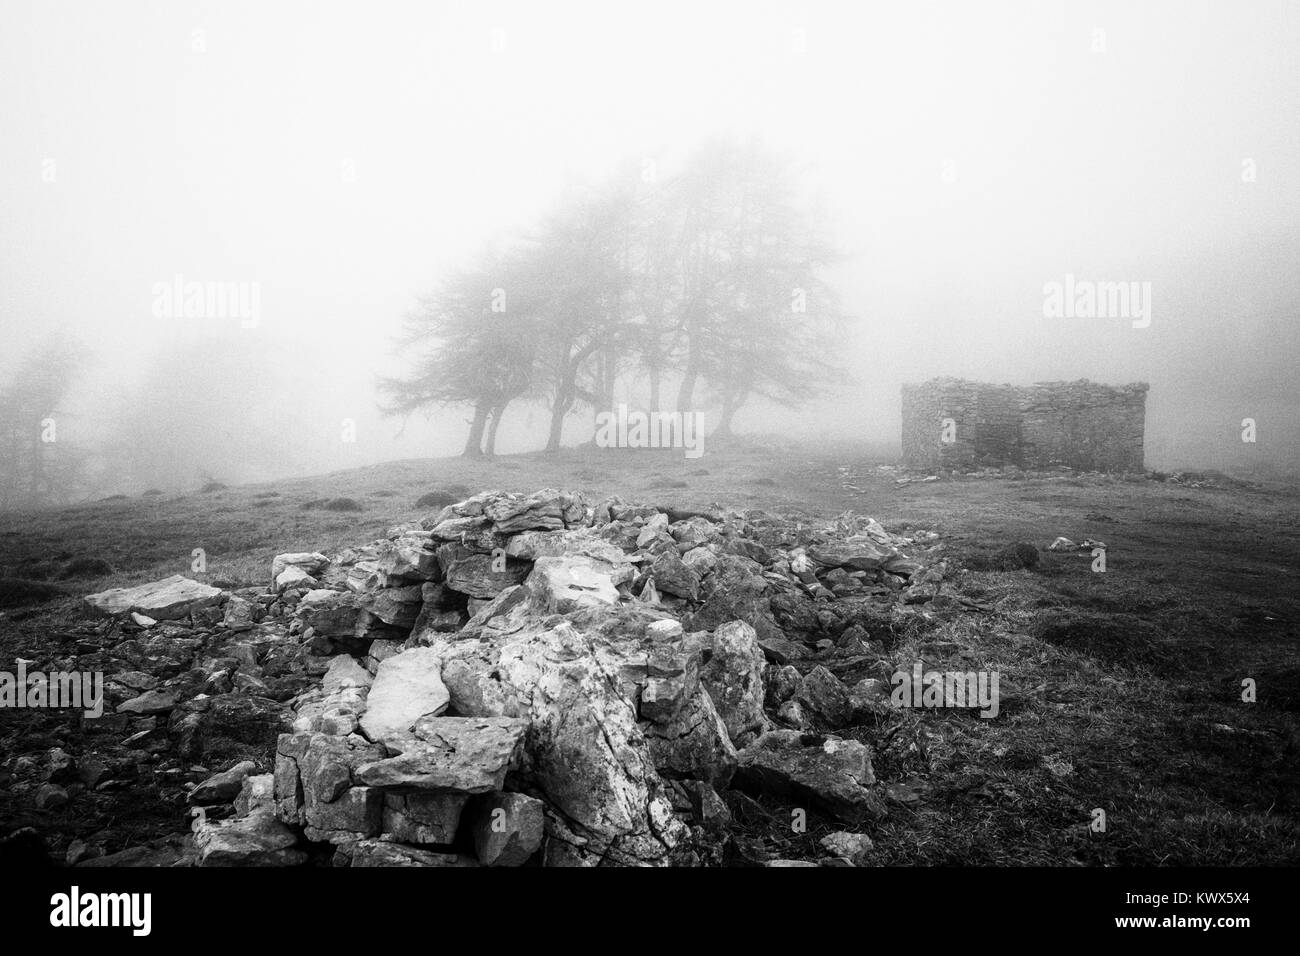 Scout scar in the mist - Stock Image